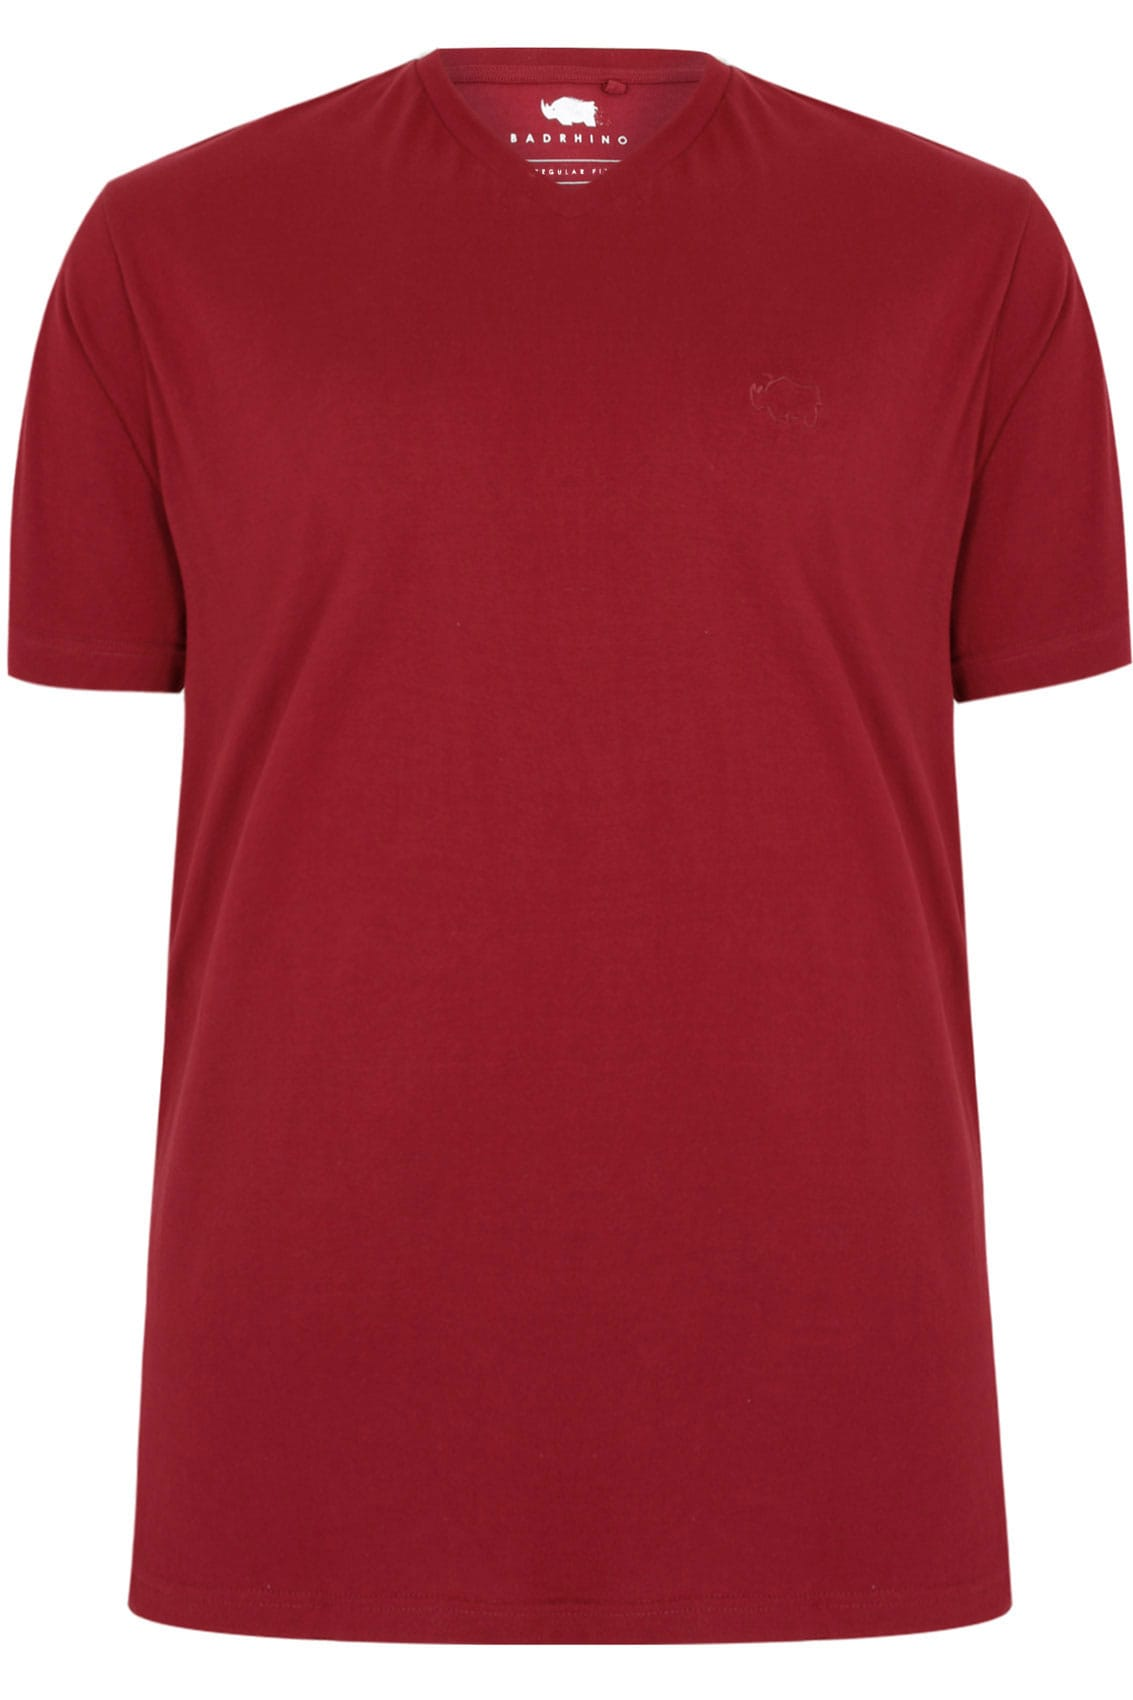 Badrhino berry red v neck basic t shirt tall extra large for Tall v neck t shirts